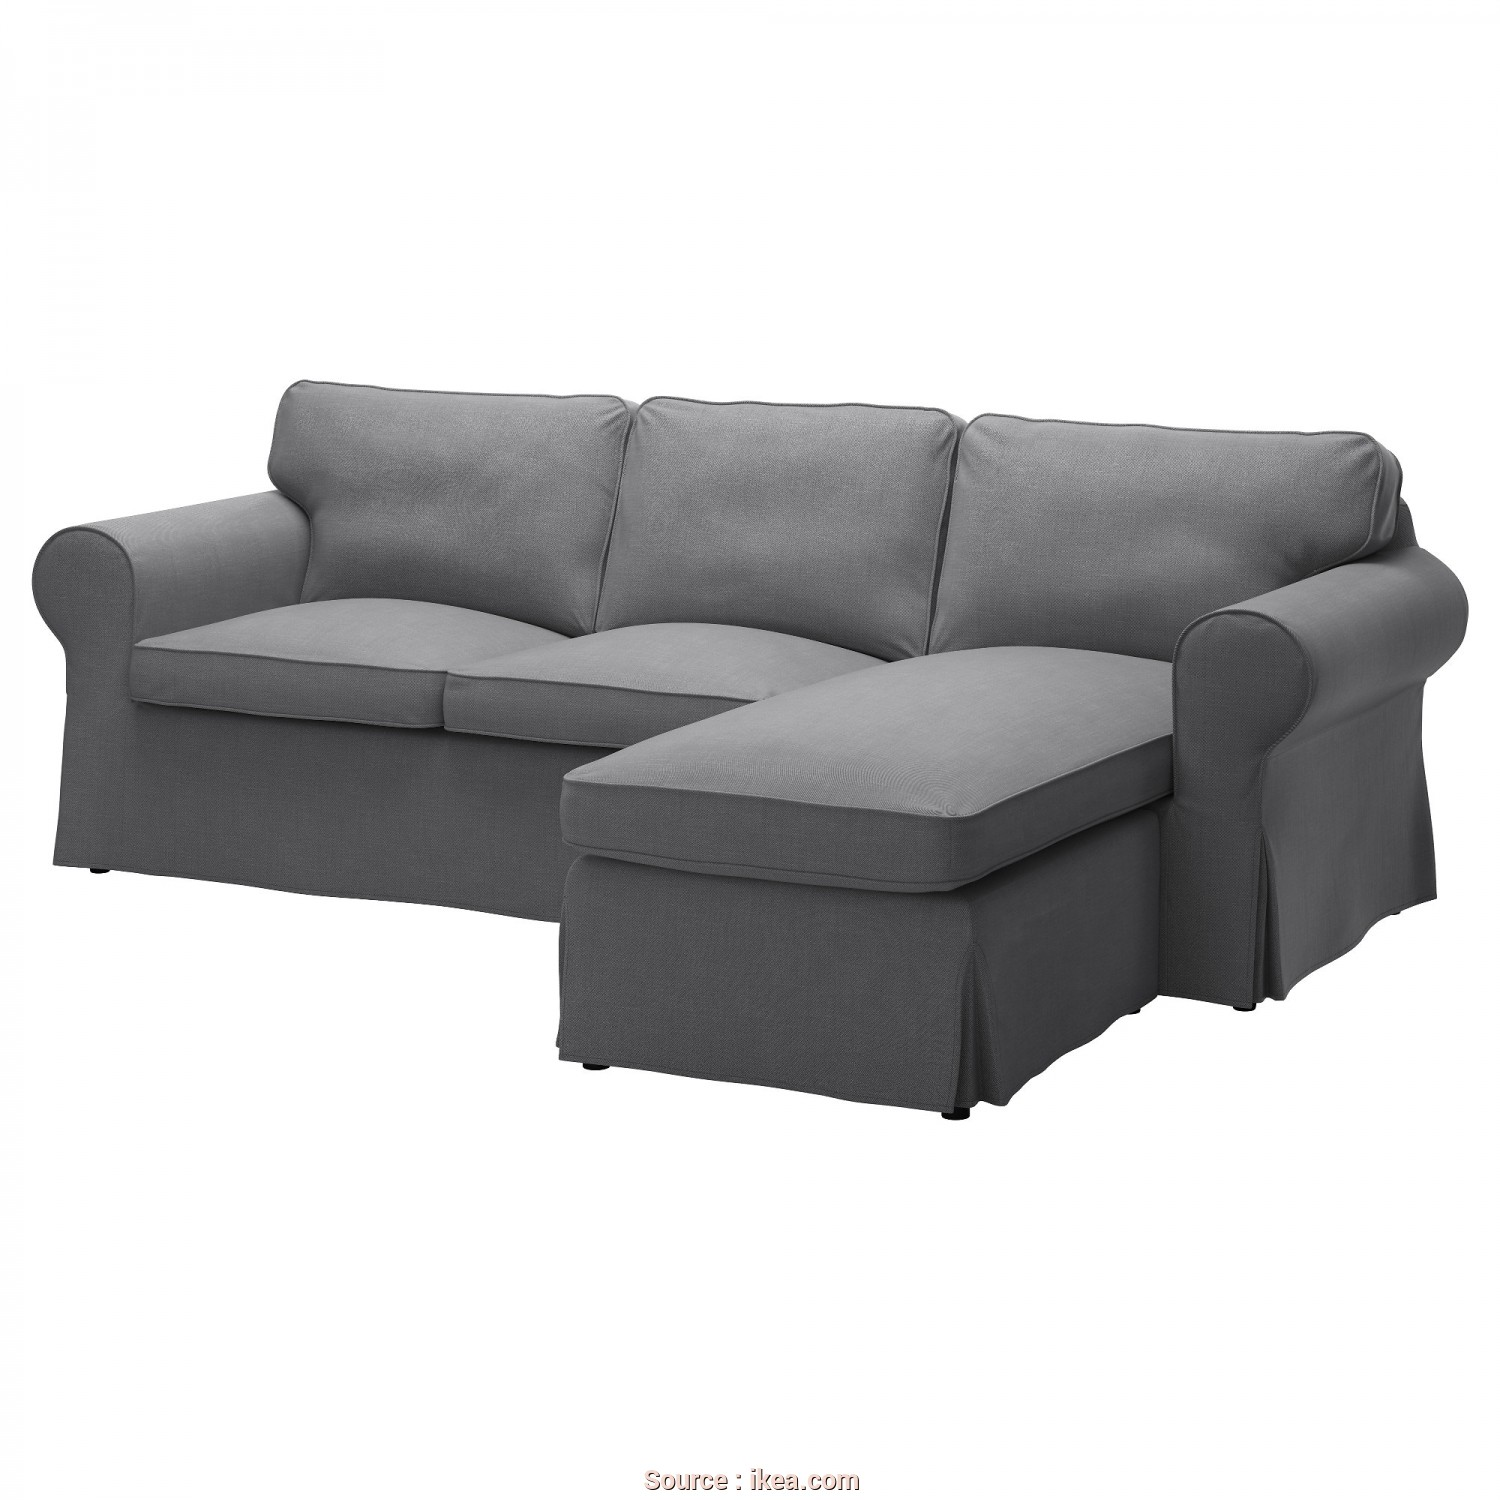 Futon Ikea Lyon, Freddo IKEA EKTORP 3-Seat Sofa 10 Year Guarantee. Read About, Terms In The